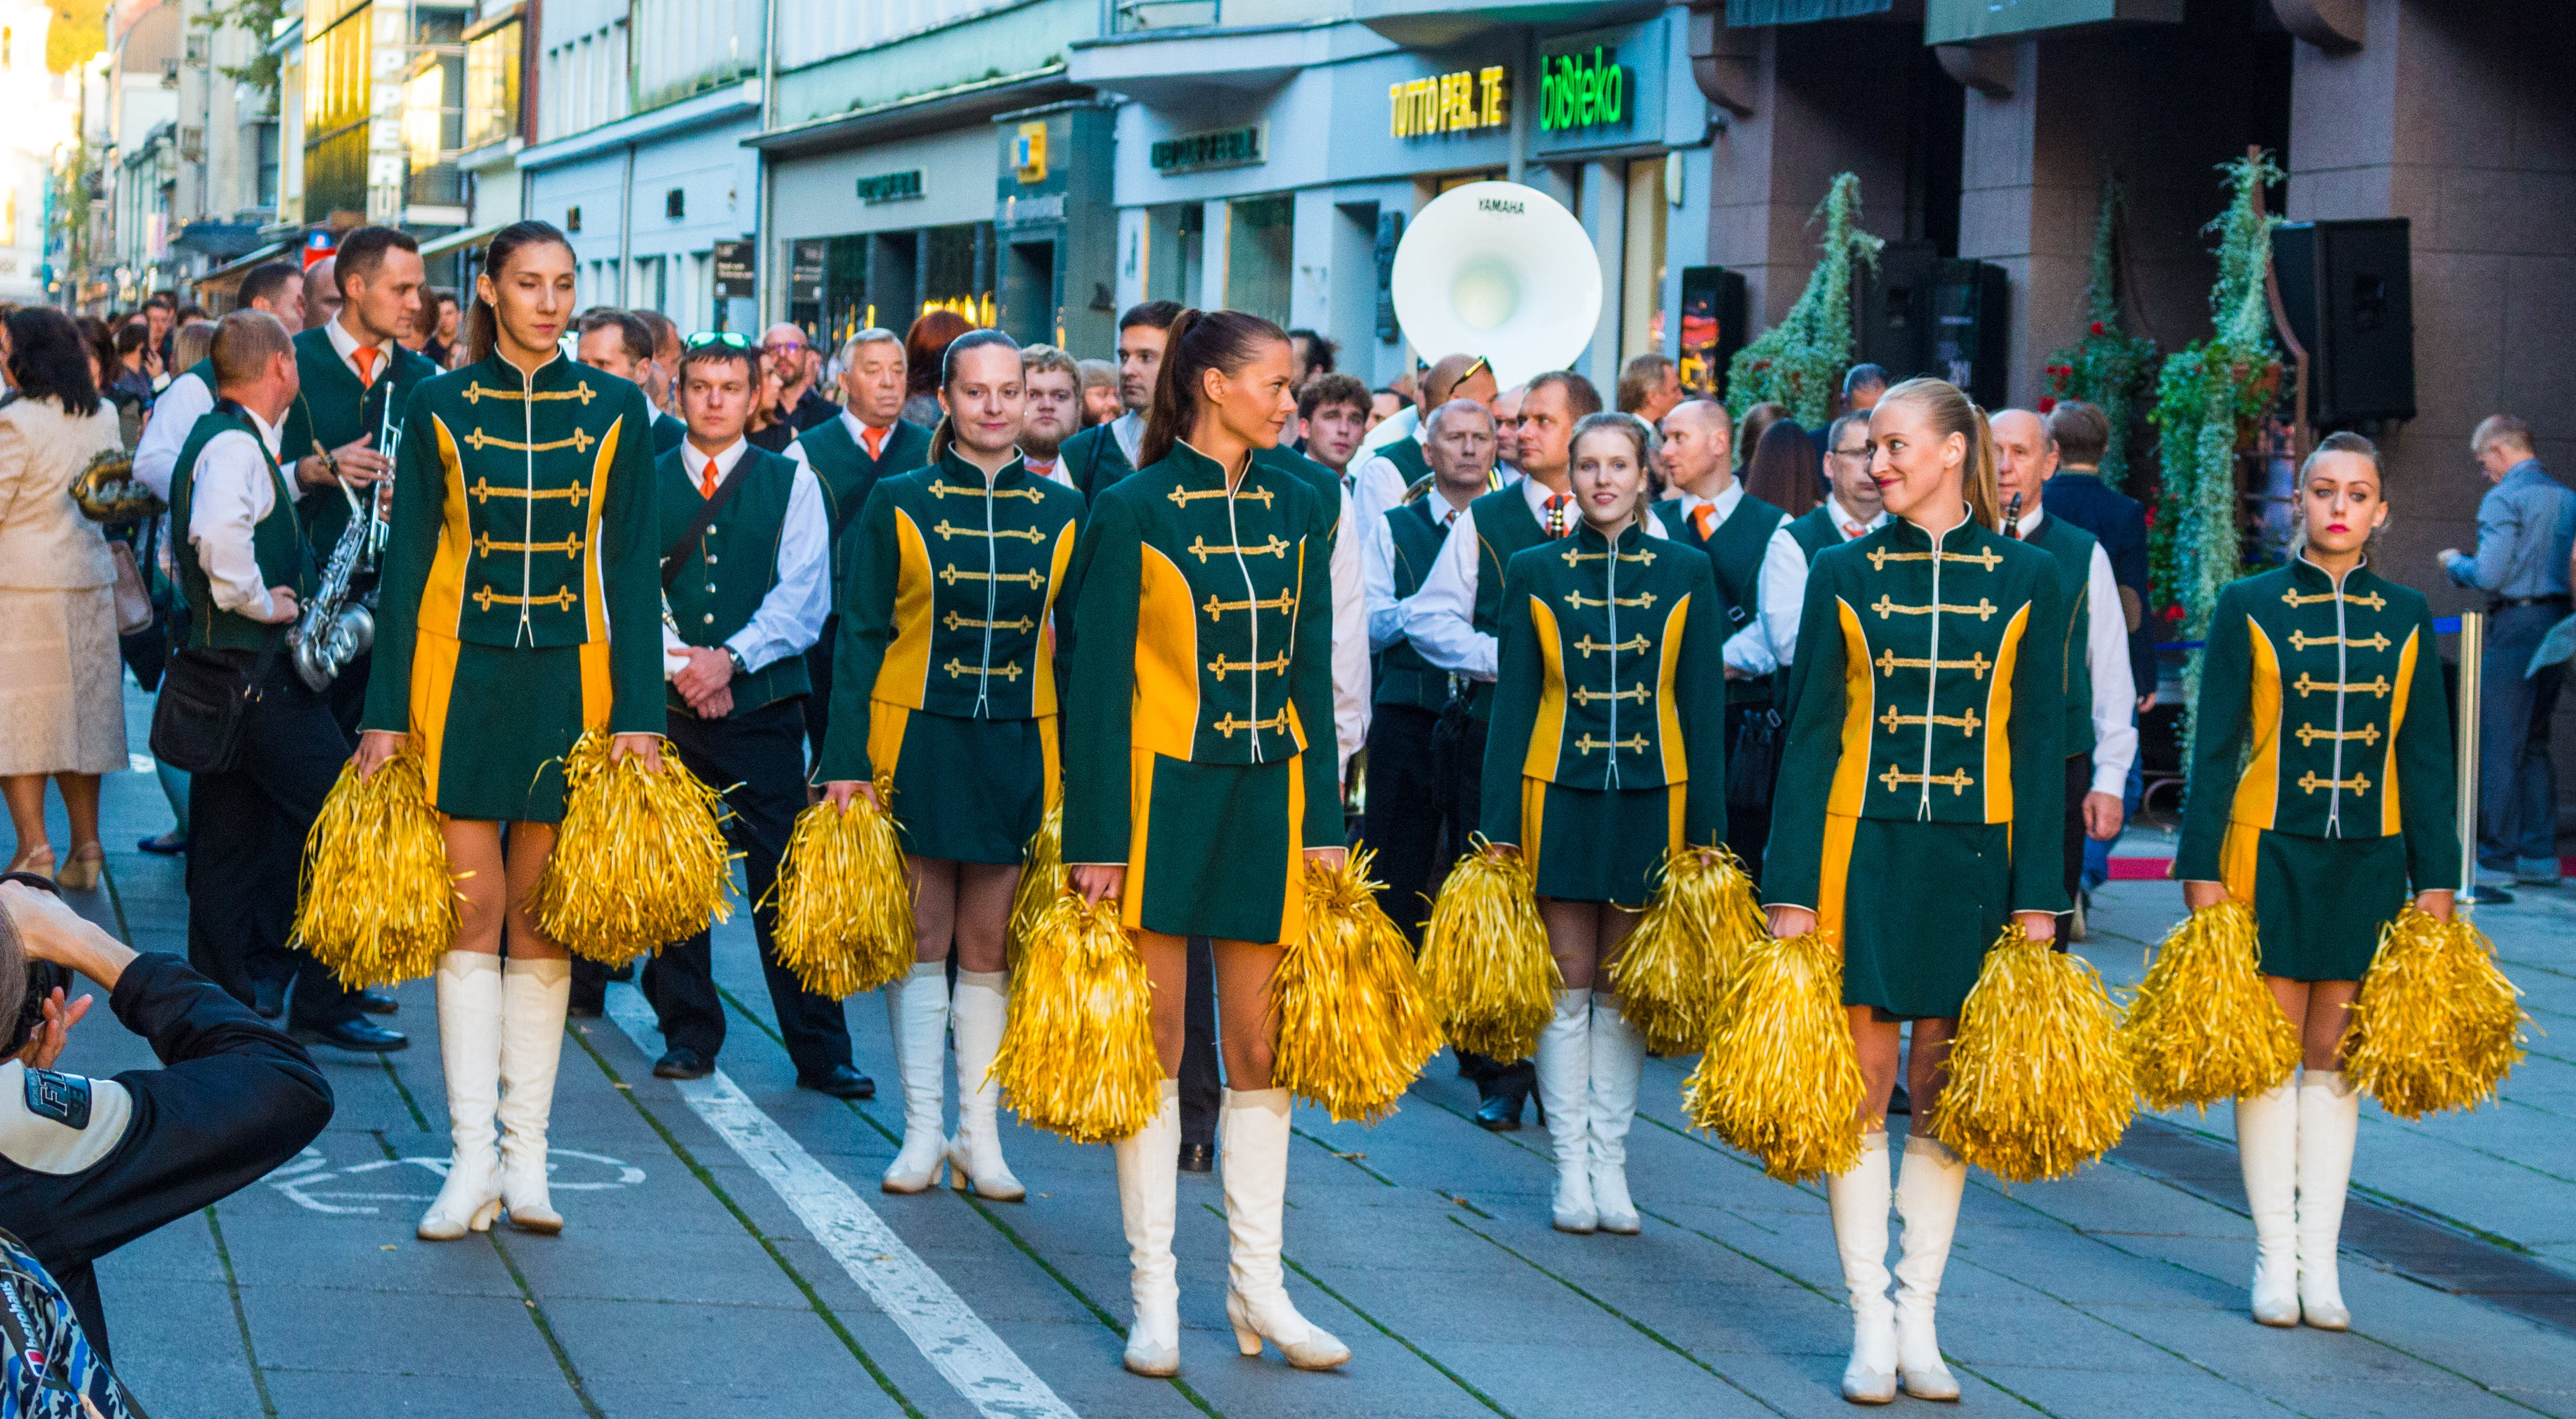 Landscape Photography of Cheerleader Parade on Road